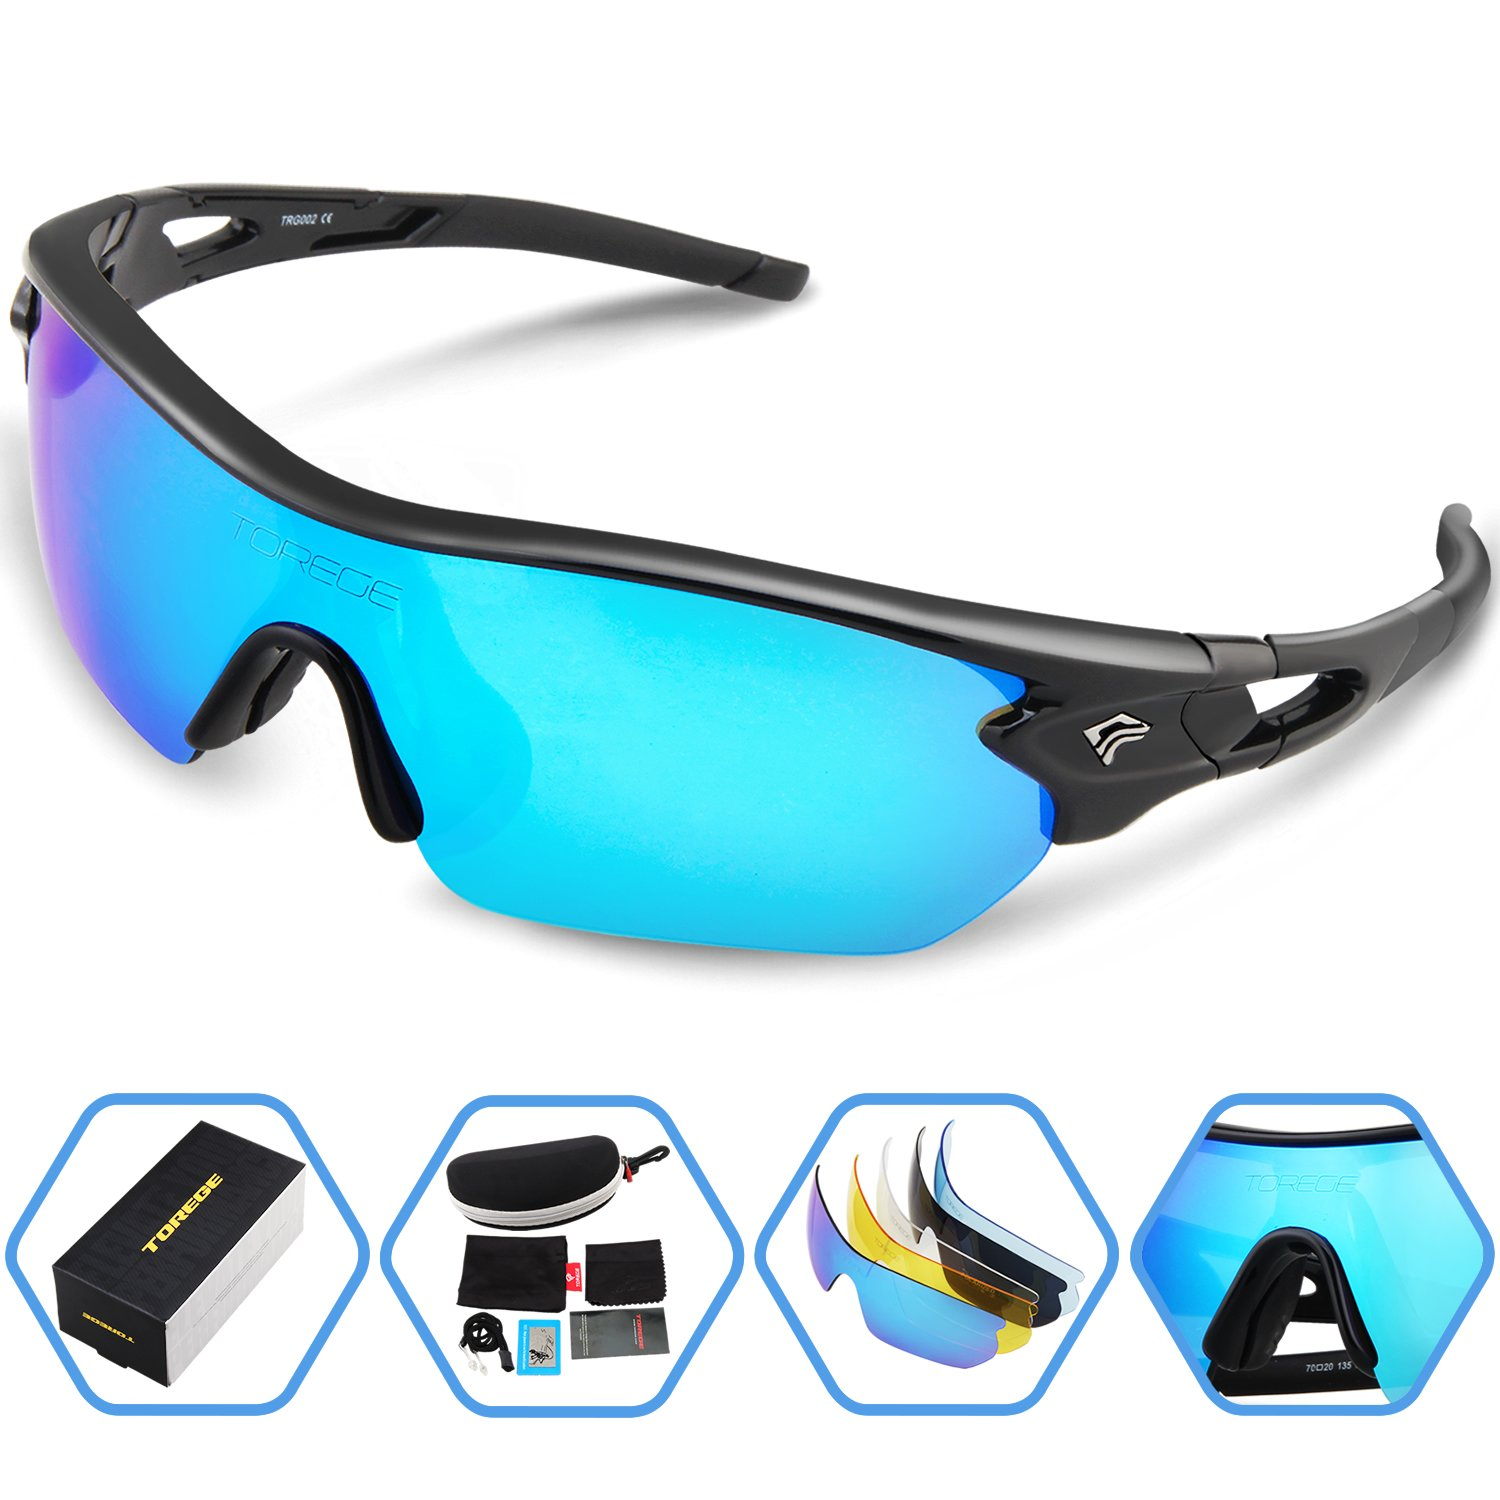 49c0f6e229 TOREGE Polarized Sports Sunglasses with 5 Interchangeable Lenes for Men  Women Cycling Running Driving Fishing Golf